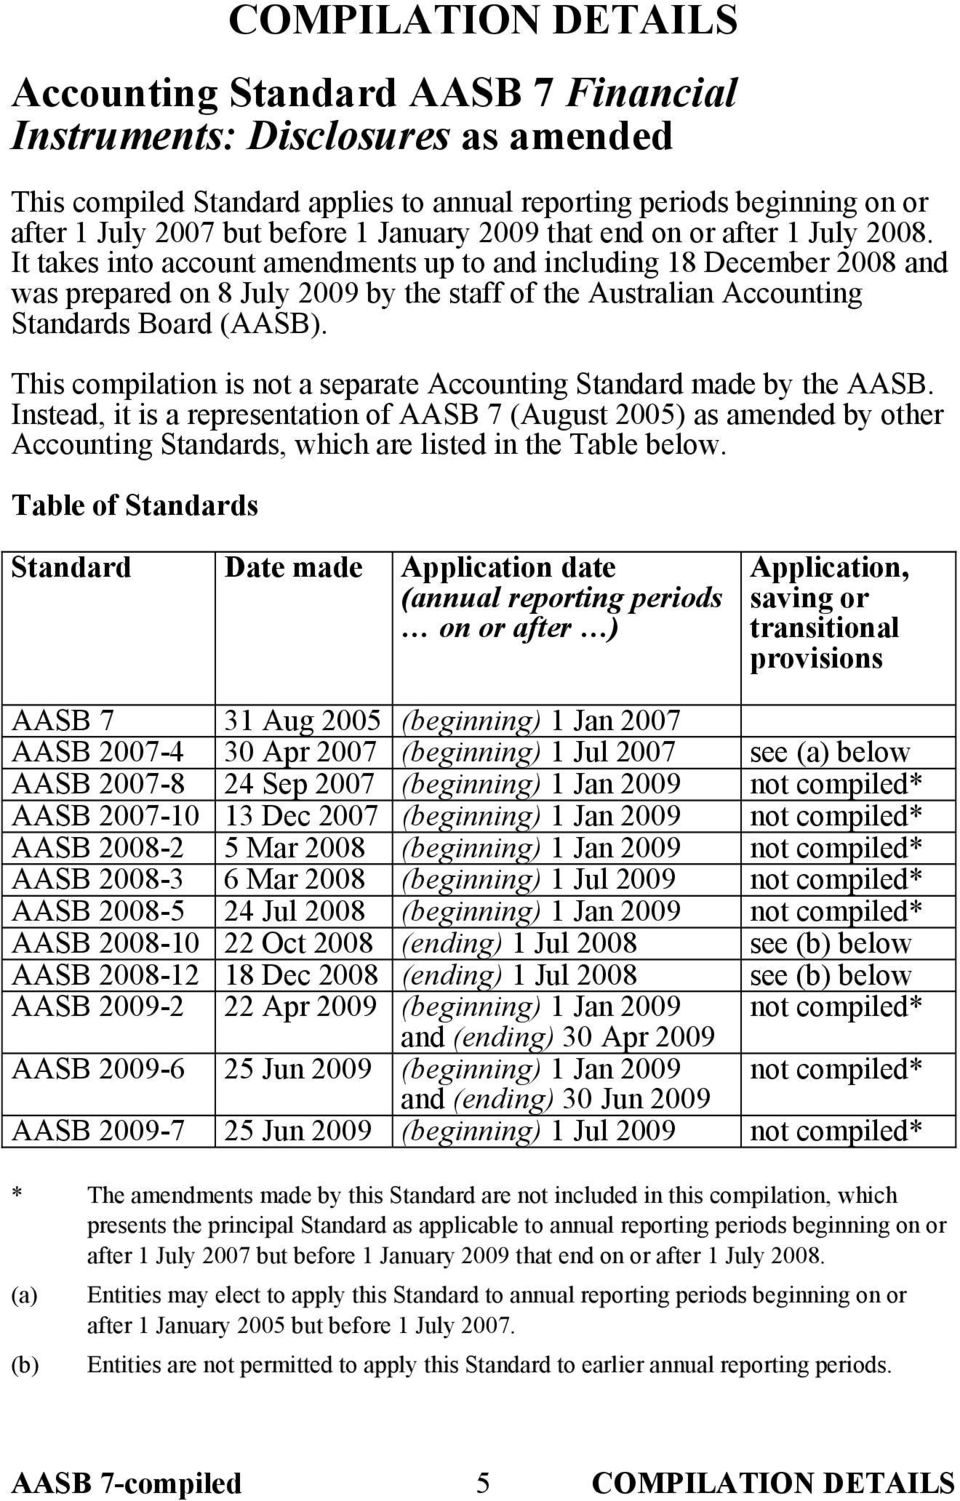 It takes into account amendments up to and including 18 December 2008 and was prepared on 8 July 2009 by the staff of the Australian Accounting Standards Board (AASB).